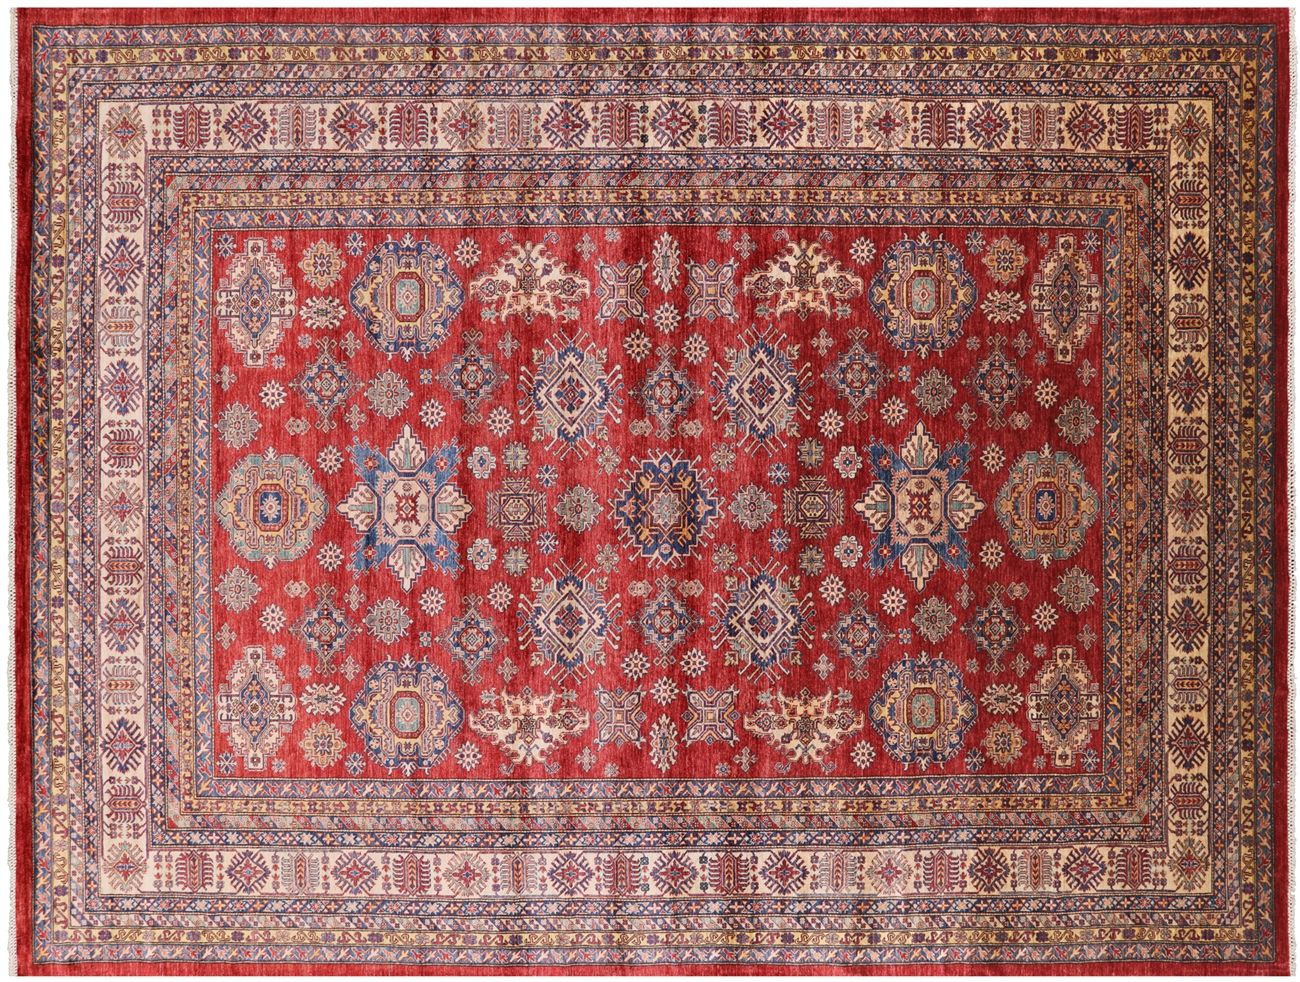 Super Kazak Handmade Wool Area Rug 12 X 16 Q2286 In 2020 Wool Area Rugs Rugs Area Rugs